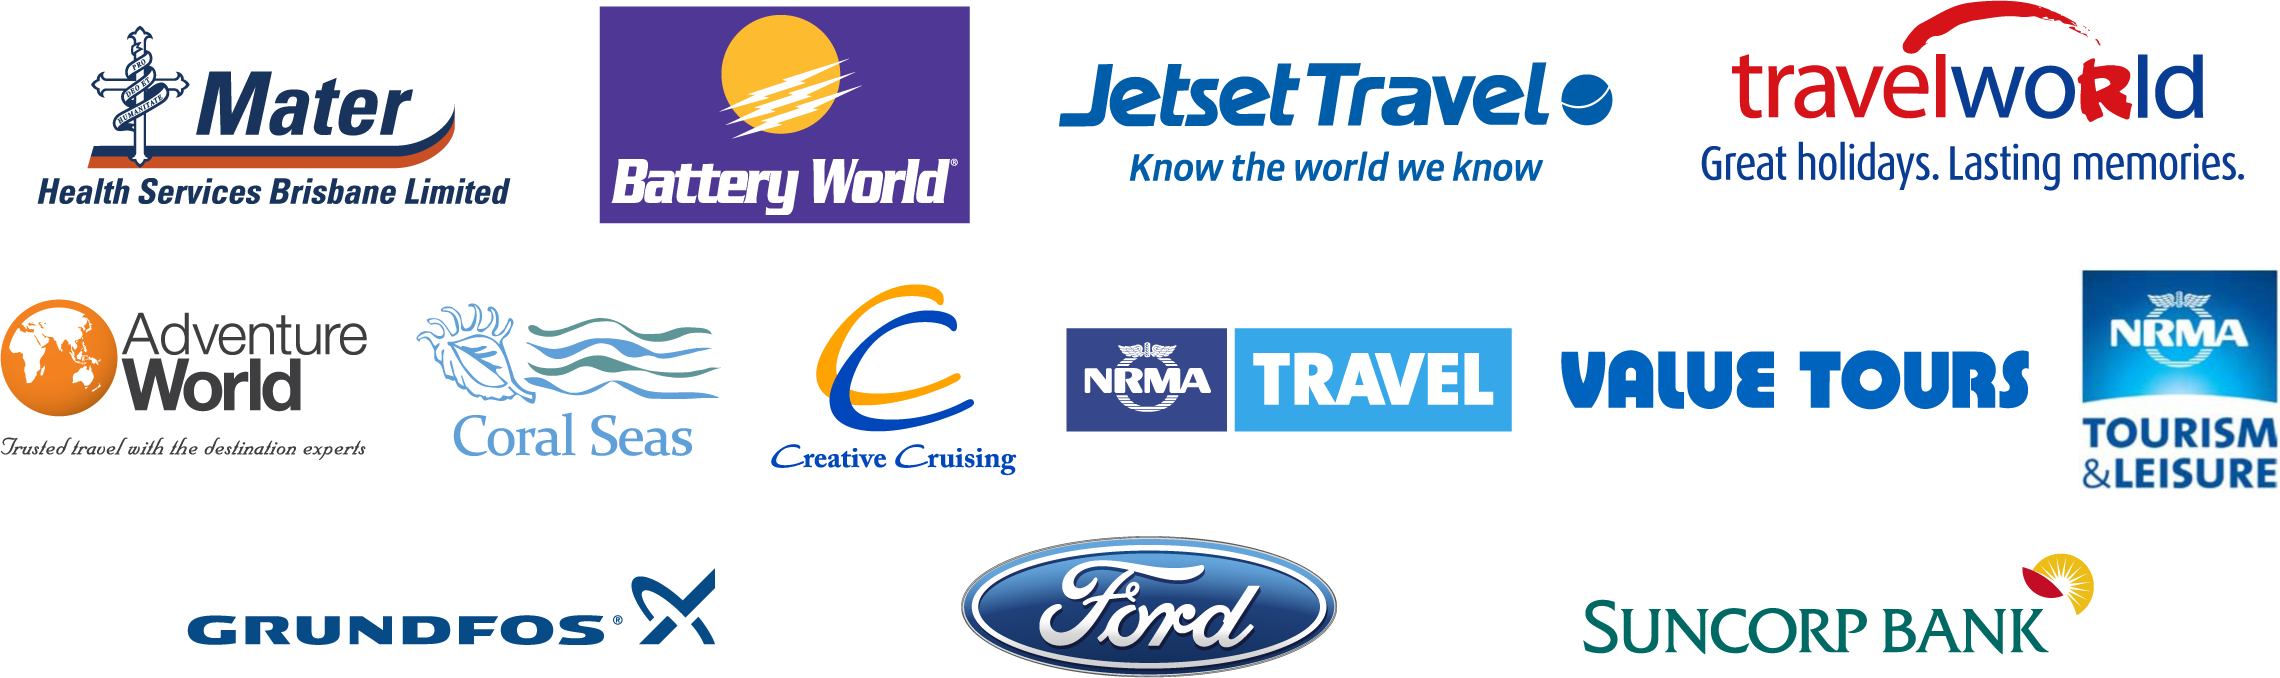 Mater Health Services Brisbane Limited | Battery World Australia | Jetset Travel | Travelworld | Adventure World | Coral Seas | Creative Cruising | NRMA Travel | Value Tours | NRMA Tourism & Leisure | Grundfos Pumps Australia | Ford Motor Company of Australia | Suncorp Banking and Insurance